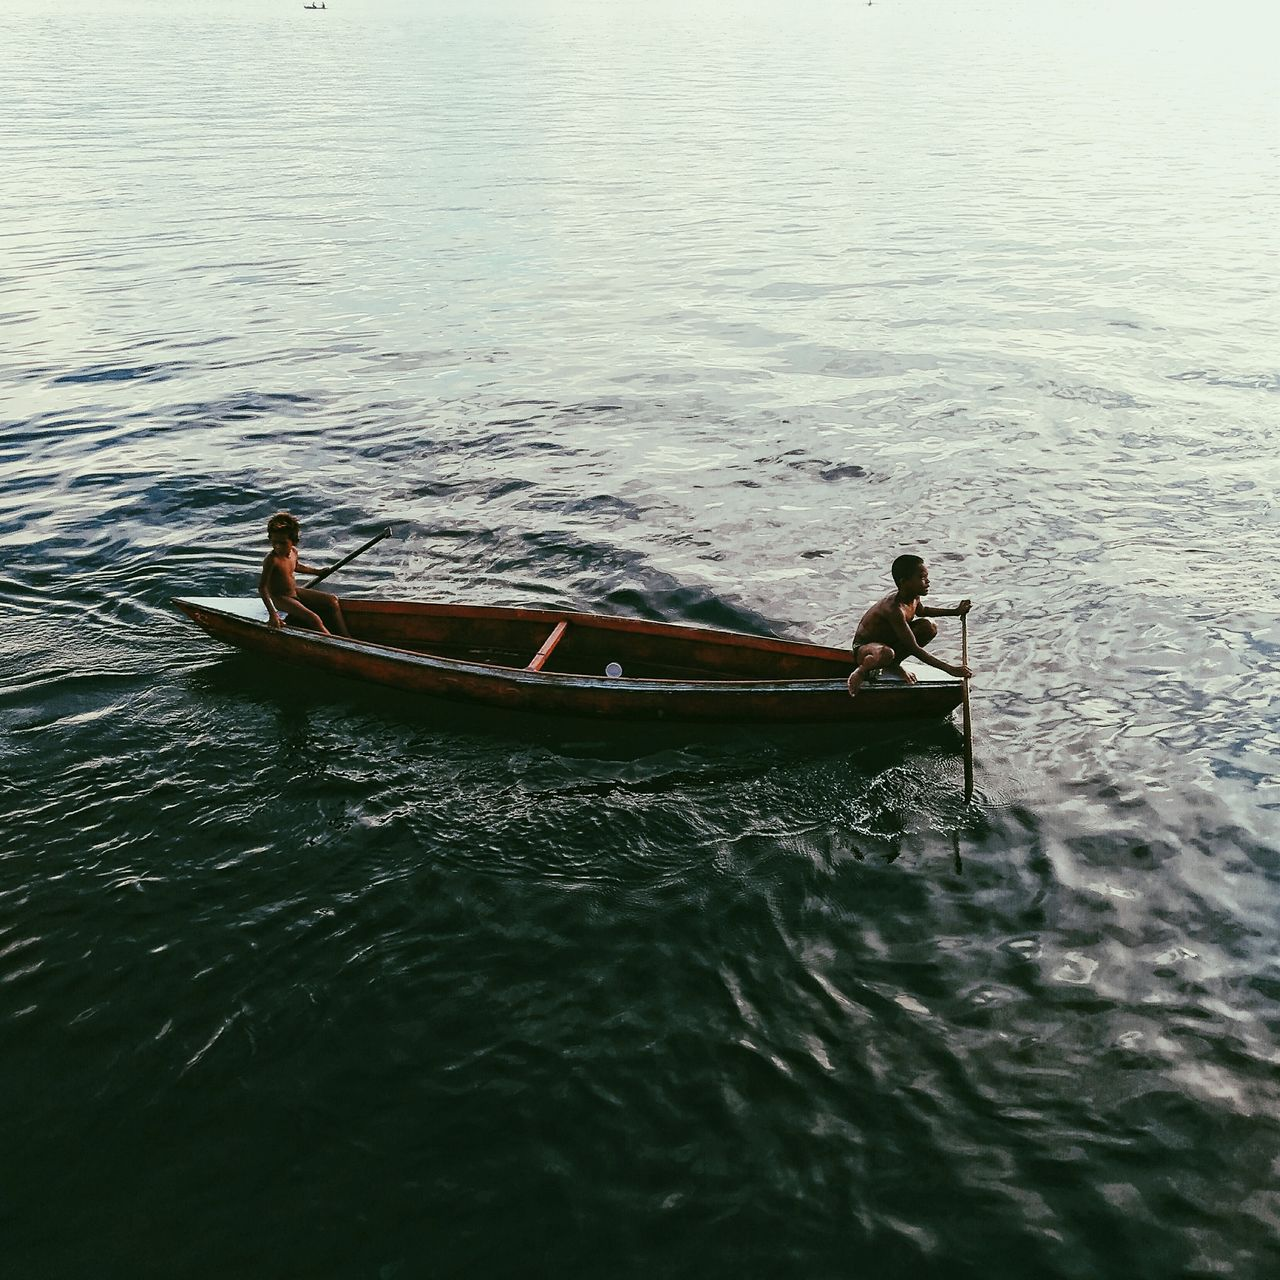 Eyeem Philippines The Great Outdoors - 2017 EyeEm Awards The Photojournalist - 2017 EyeEm Awards The Street Photographer - 2017 EyeEm Awards nautical vessel mobile photography CapturedByZ3N water Transportation mode of transport boat men outdoors real people Nature day occupation Rowing fisherman only men sailing Oar Zamboanga Philippines Nature